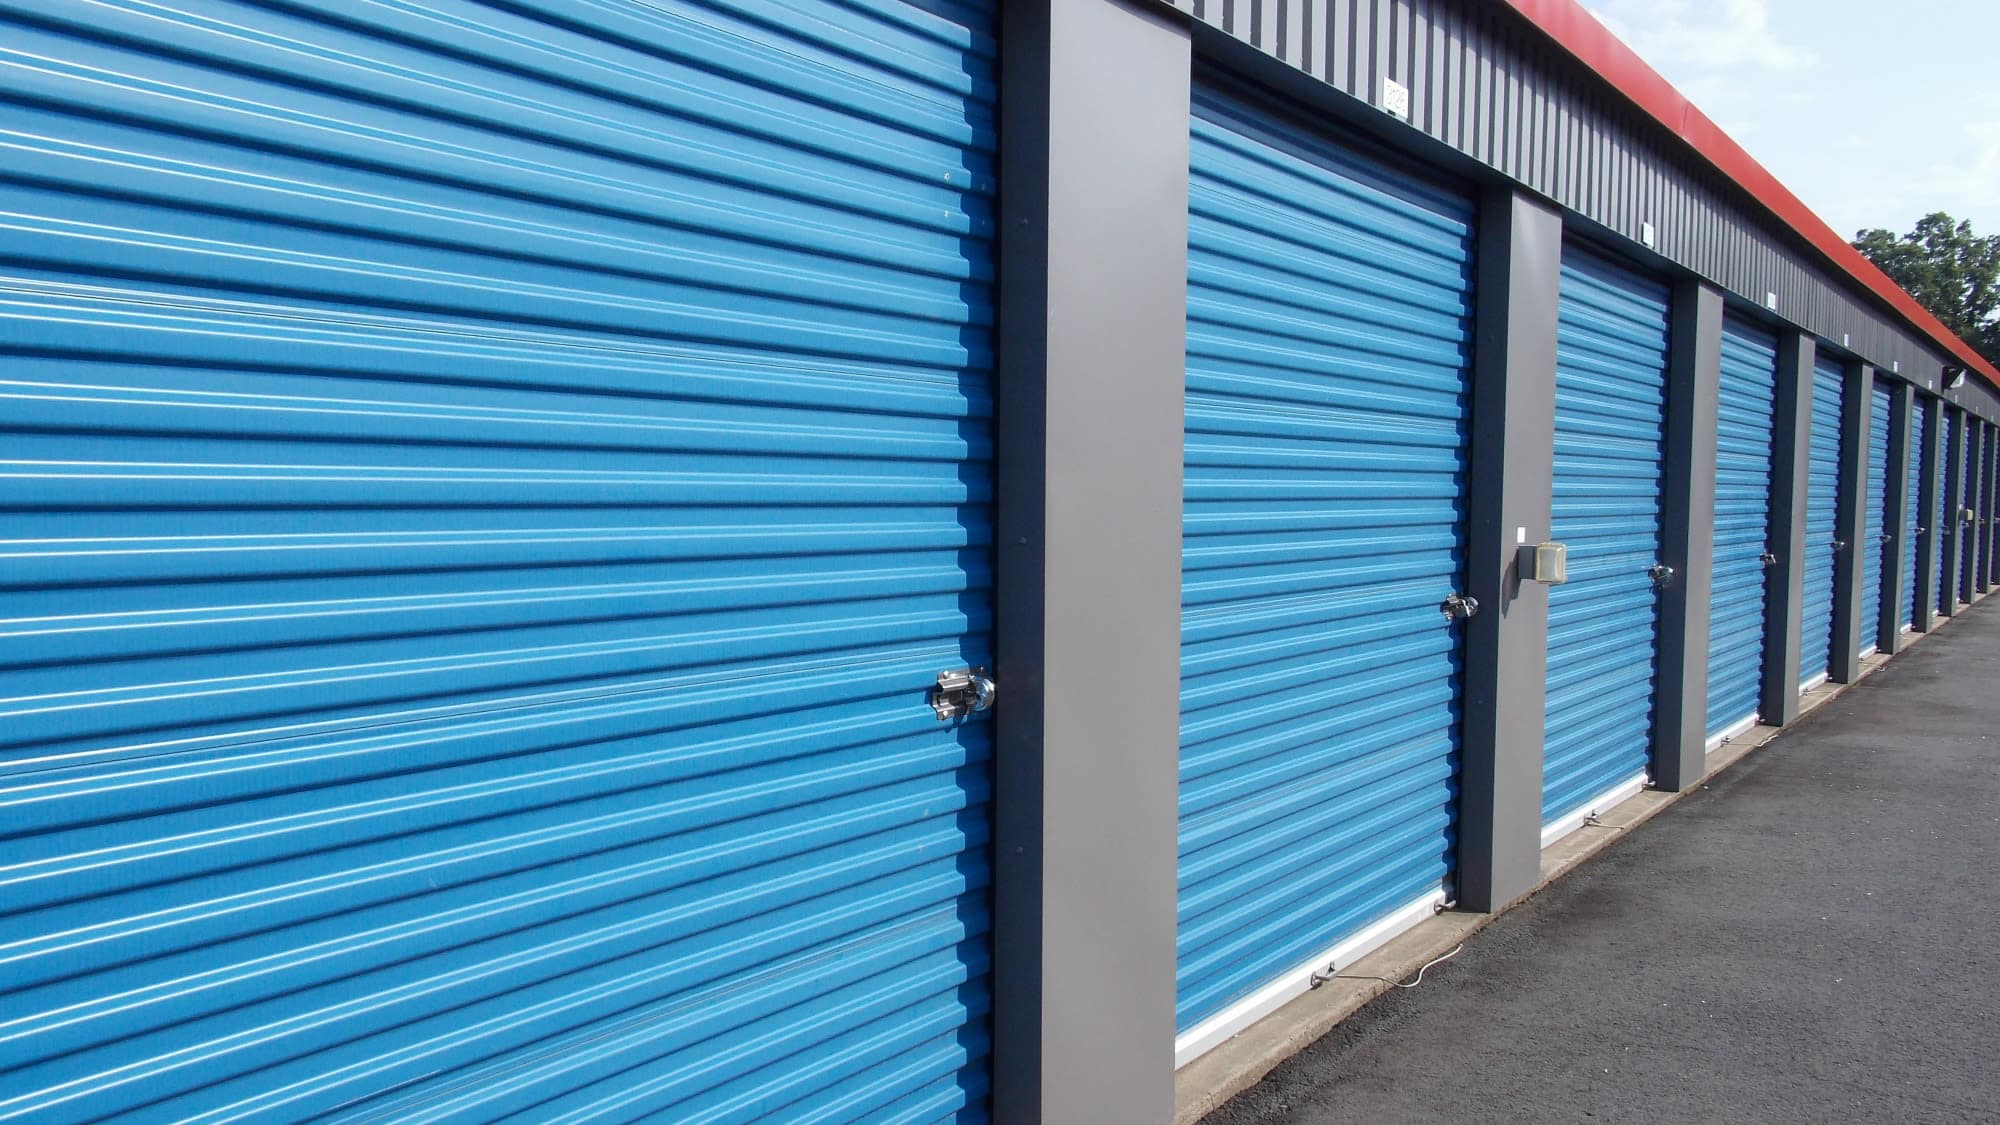 Exterior units at Self Storage Plus in Manassas, VA